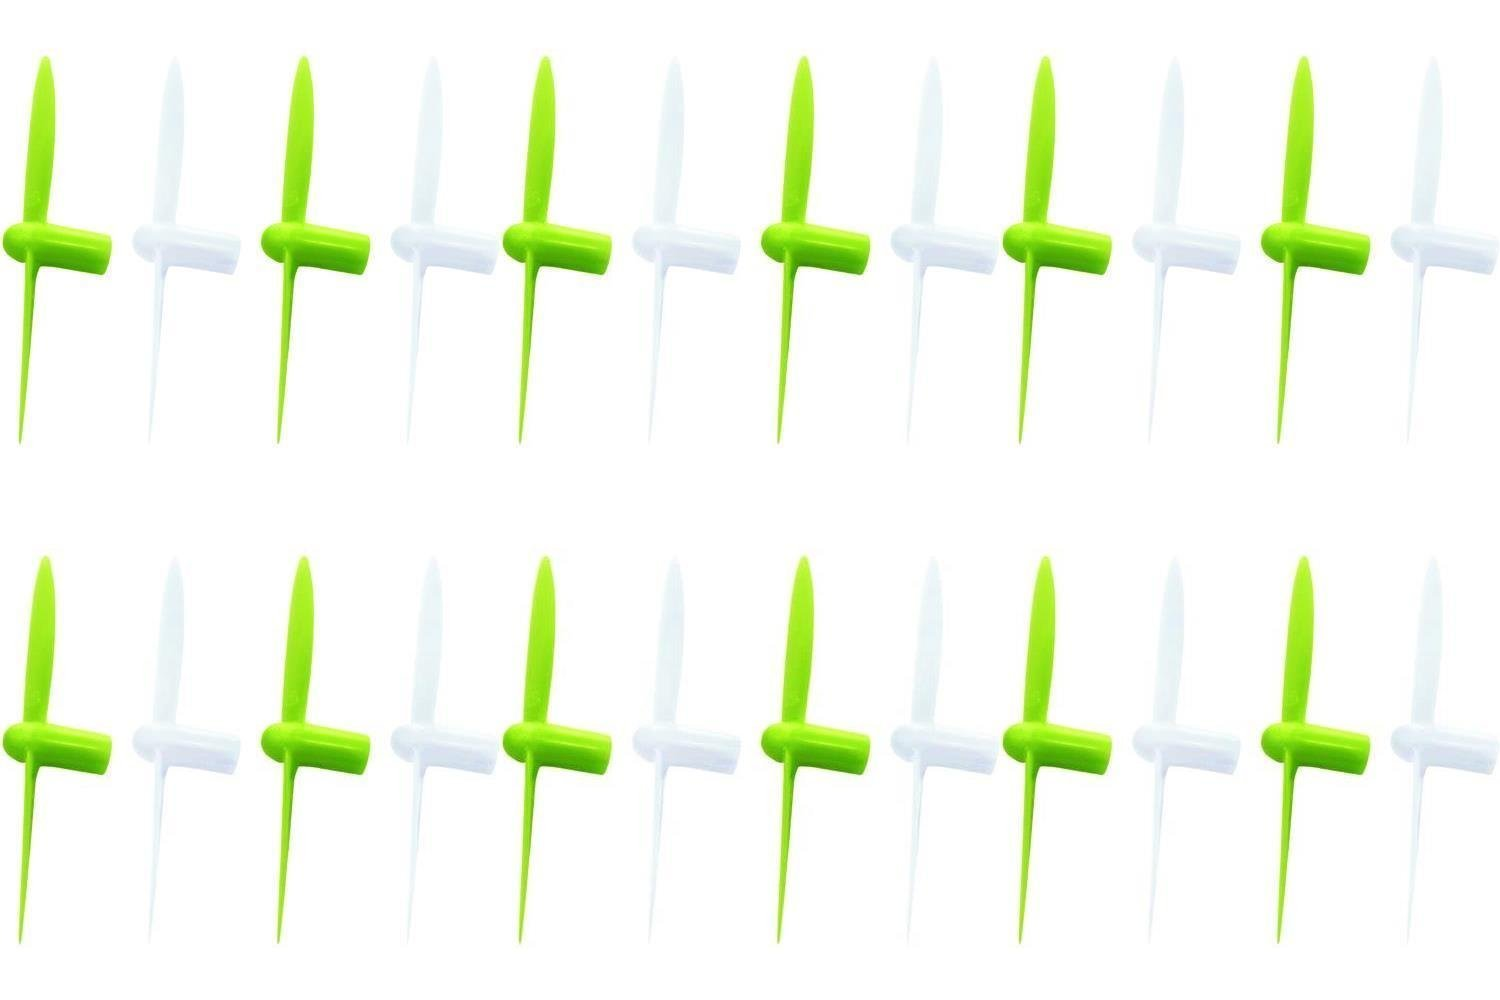 6 x Quantity of Estes Proto X SLT Nano Propeller Blades Lime Grün & Weiß Propellers Props Prop Set Blades Rotor Blade Replacements - FAST FREE SHIPPING FROM Orlando, Florida USA!